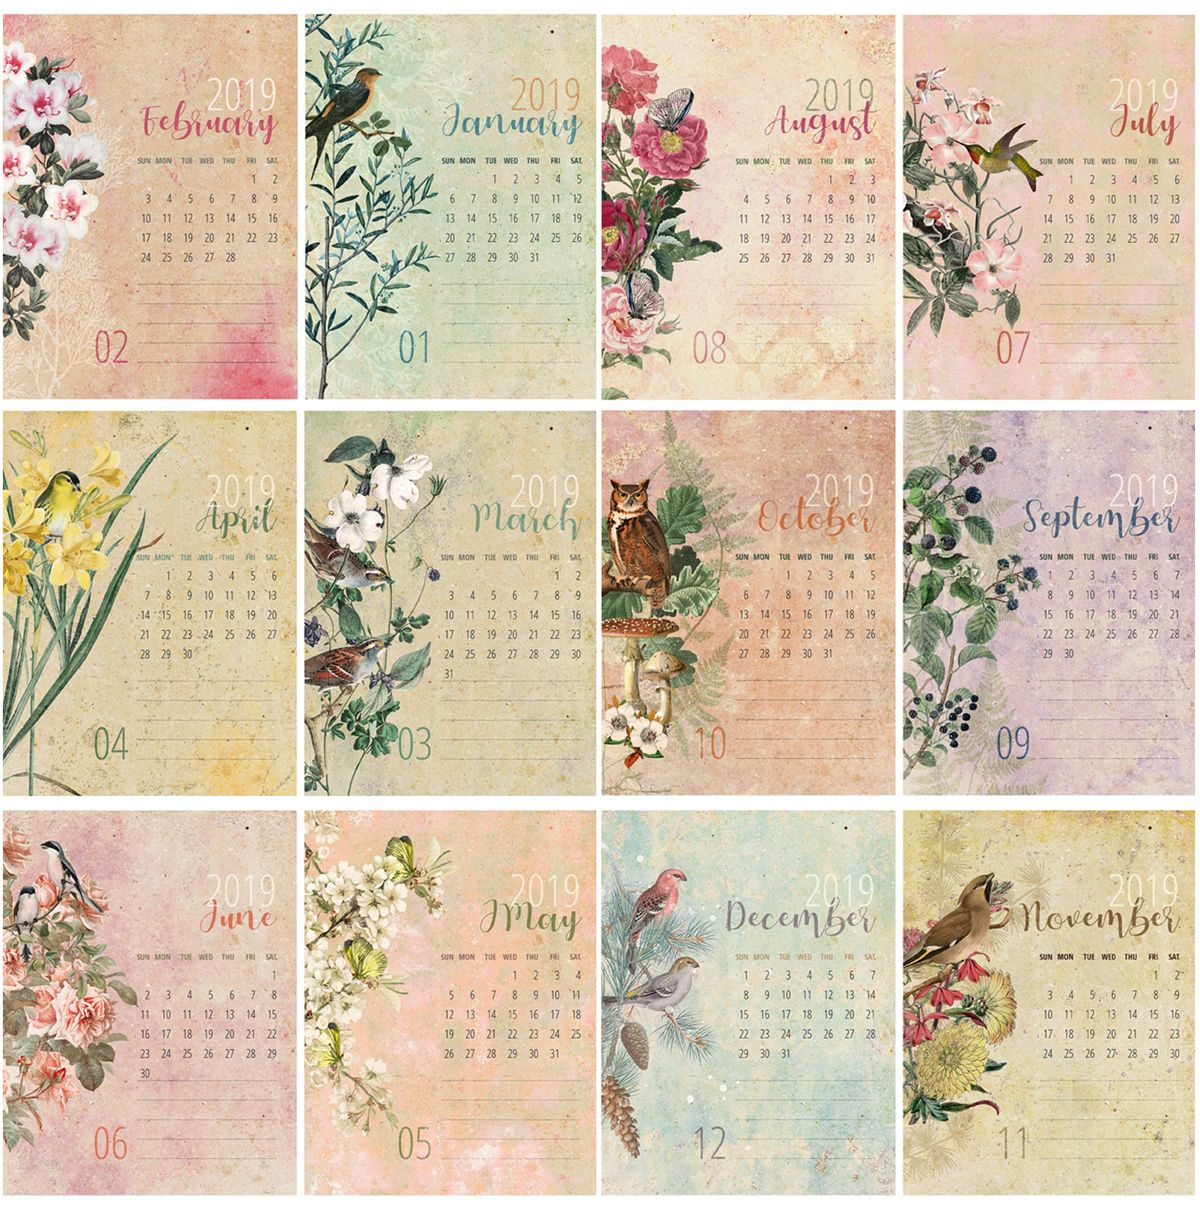 2019 2020 Floral Desk Calendar: Pin On DIY Arts And Crafts